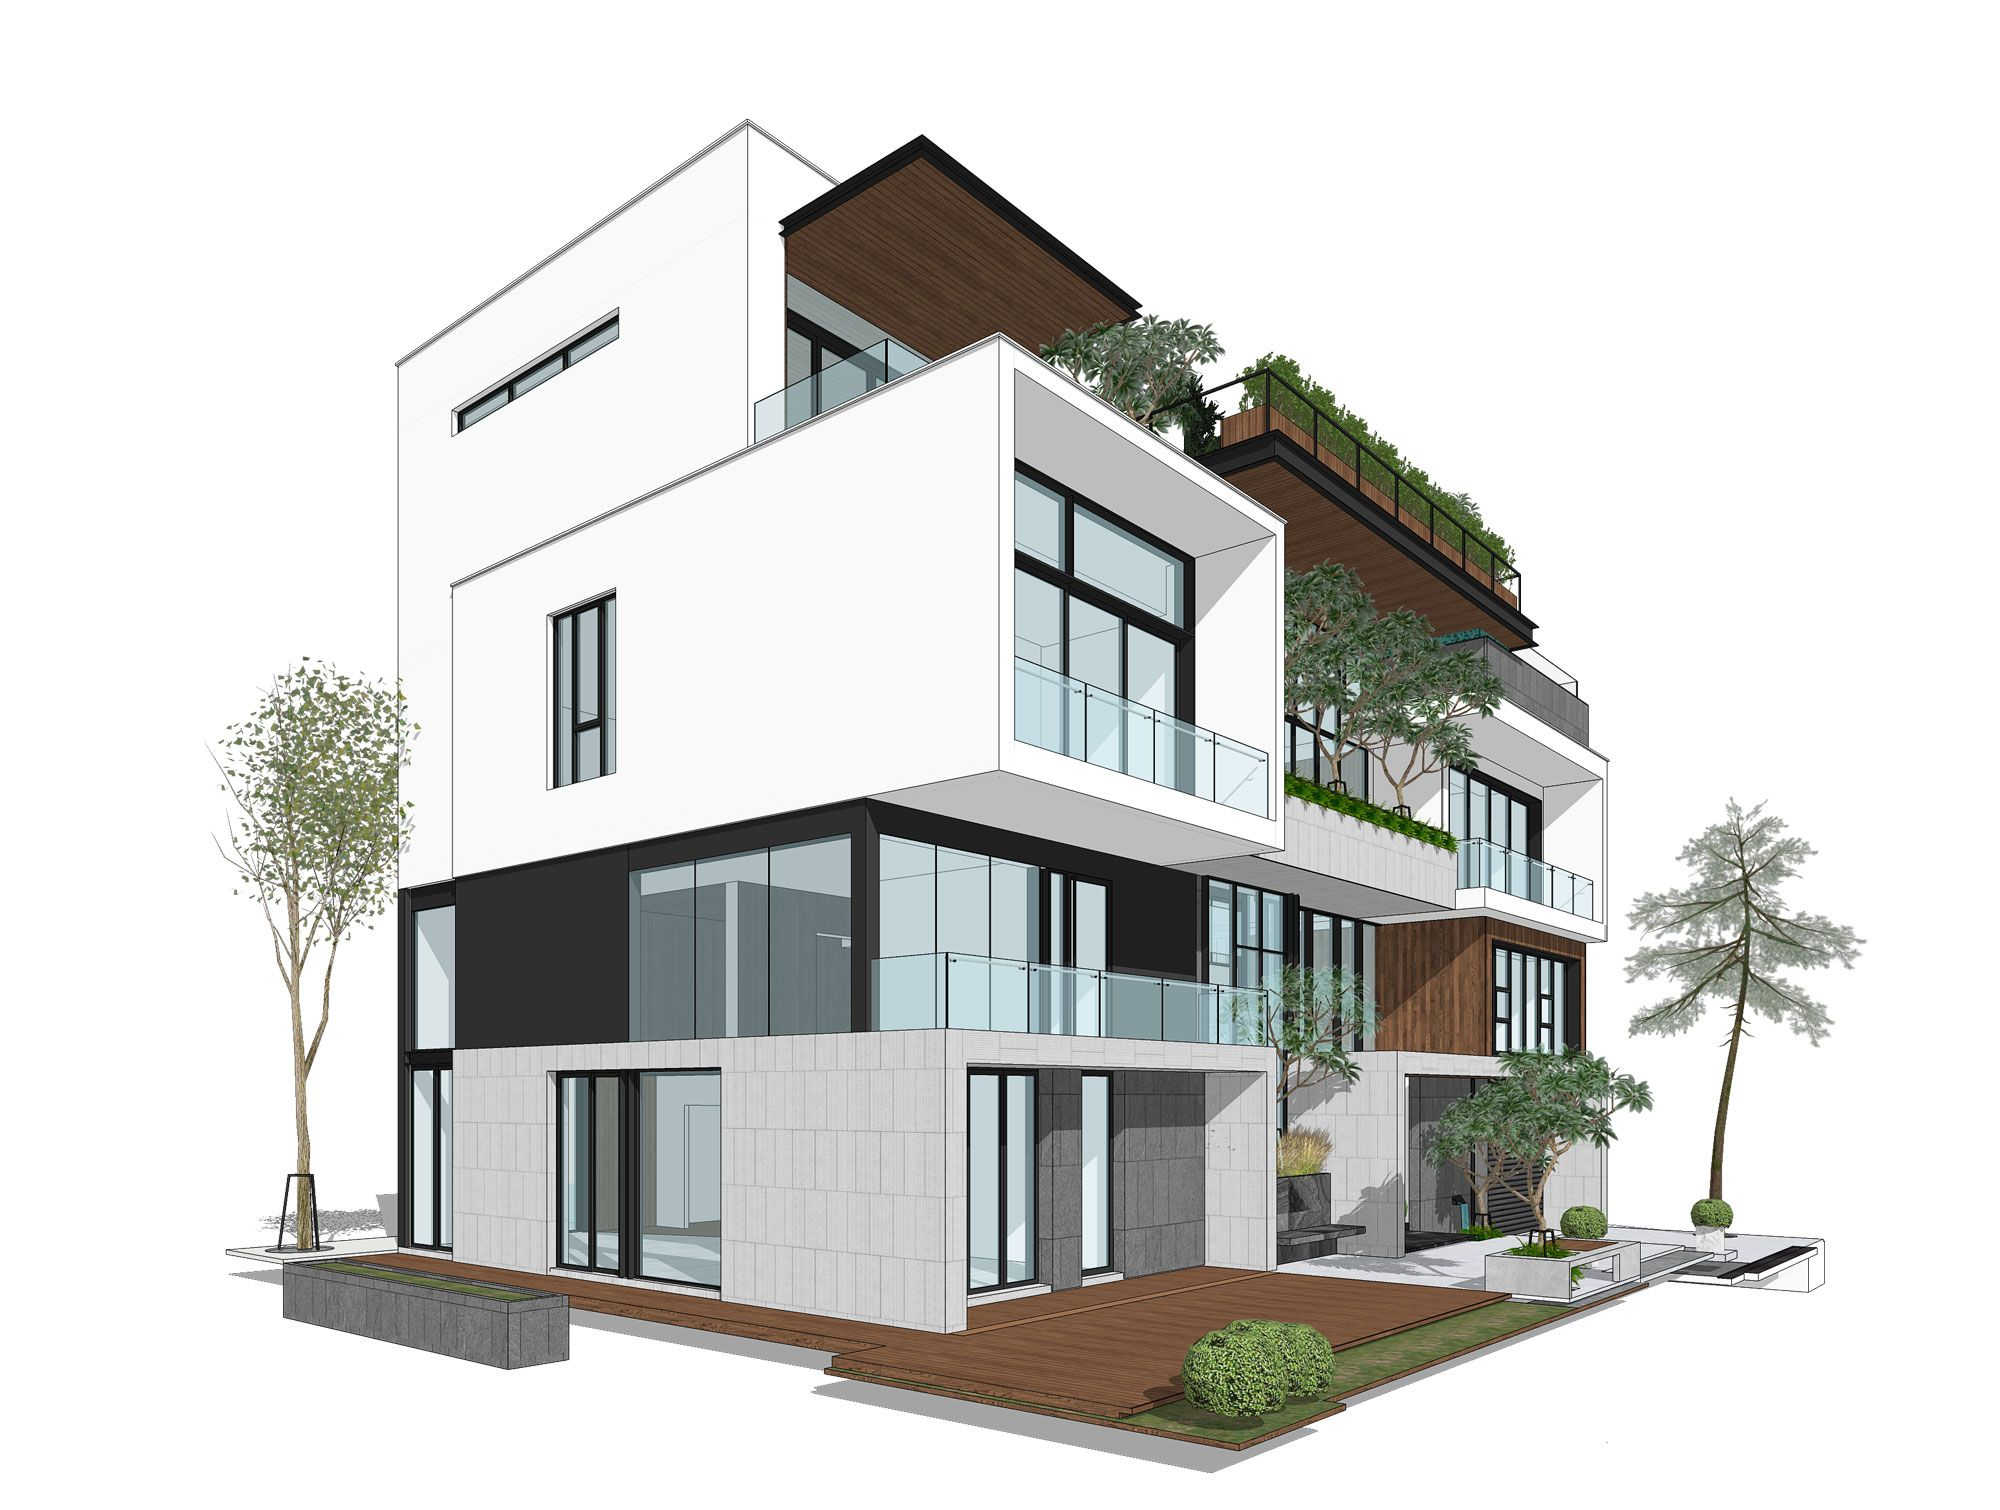 Pin by Huy Tran on Arch House Design in 2019 | House design, House House Front Design Sketch on house construction, house layout design, house template, house model design, house drawing, house painting design, house art design, house design blueprint, house perspective design, house autocad, house architecture design, house graphic design, house light design, house green design, sketchup house design, green building design, house studio design, product page design, house study design, house plans with furniture layouts,